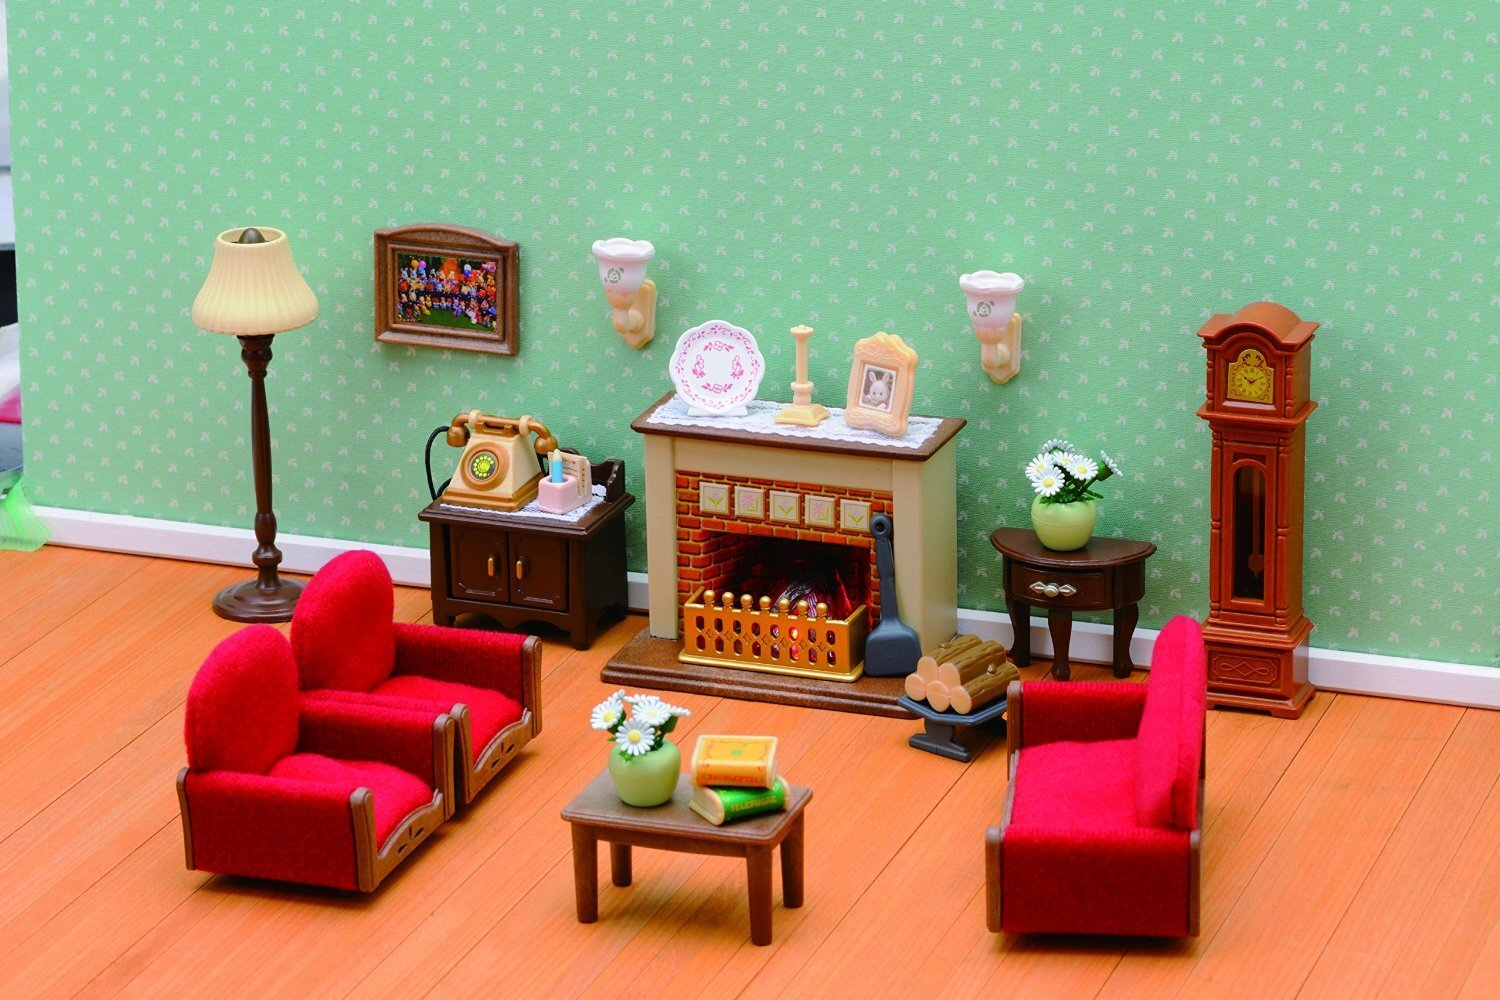 buy sylvanian families luxury living room set - Sylvanian Families Living Room Set